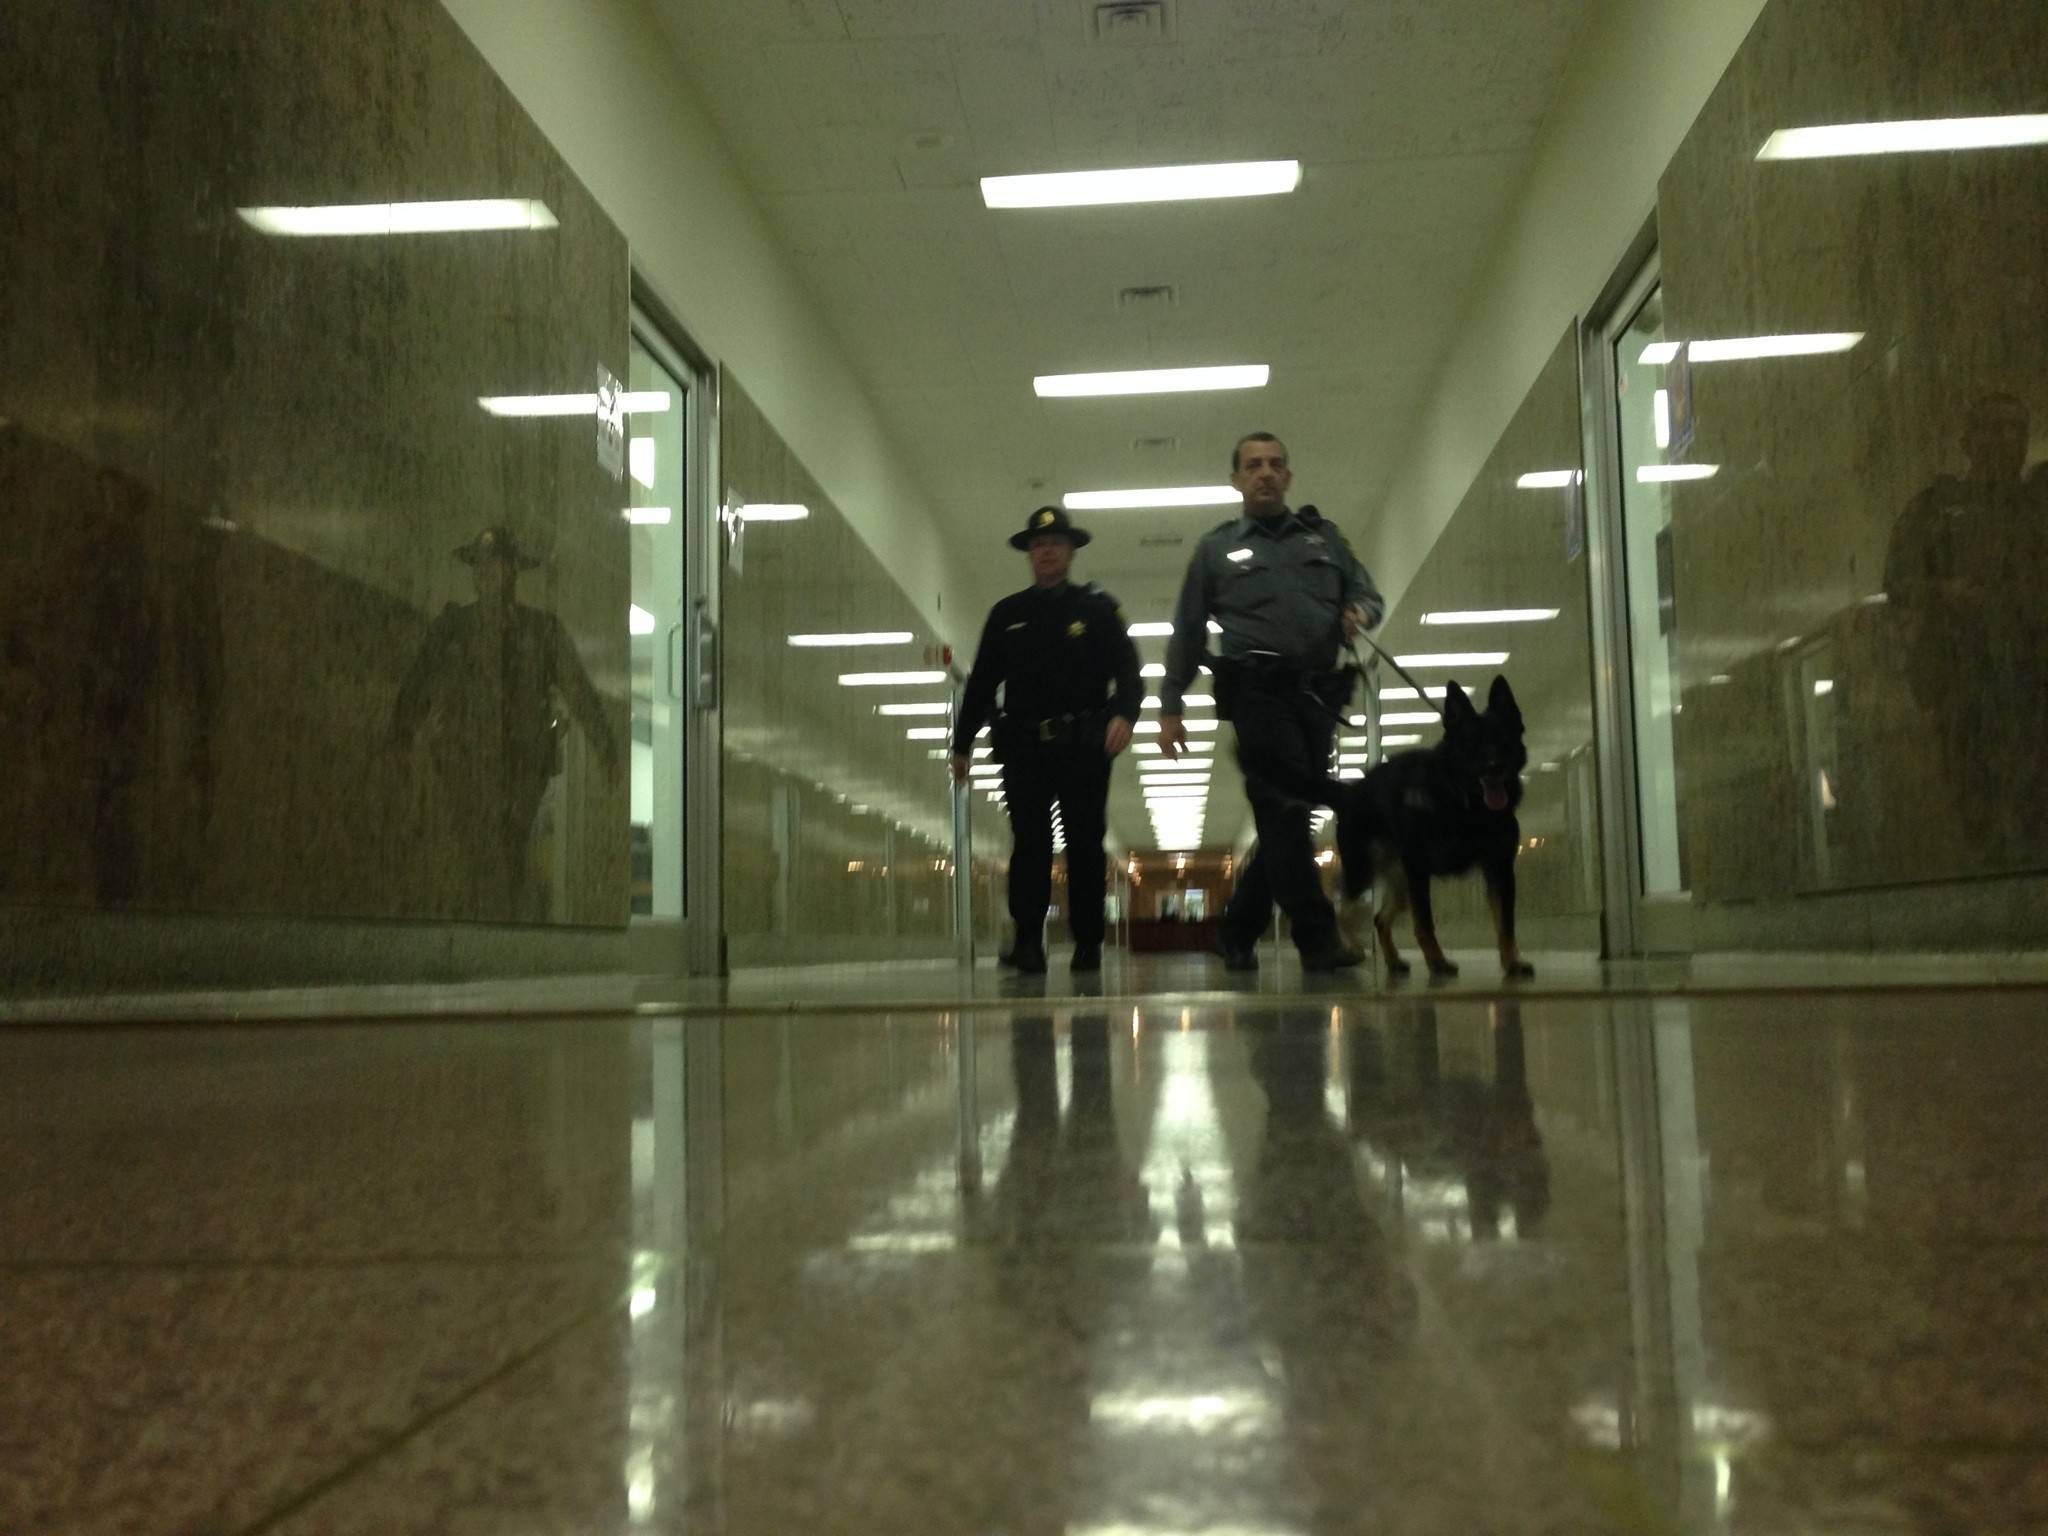 Illinois secretary of state police officers help secure former state Rep. Keith Farnham's Springfield office in March.